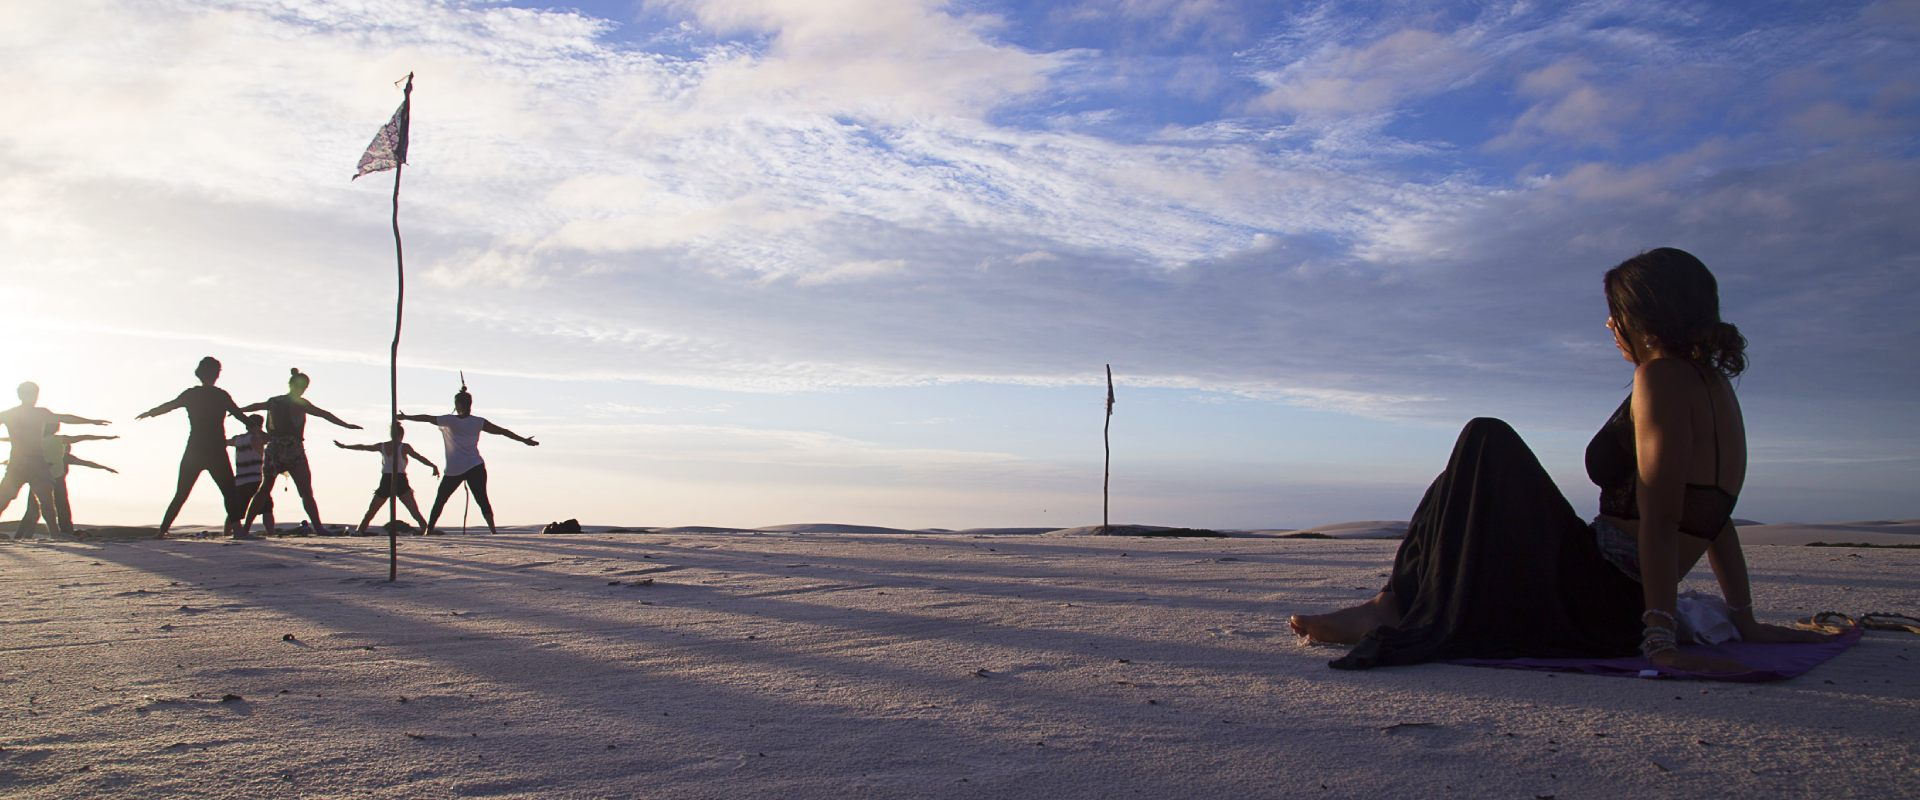 A girl looking at a group of people doing yoga on the sand dunes in Atins